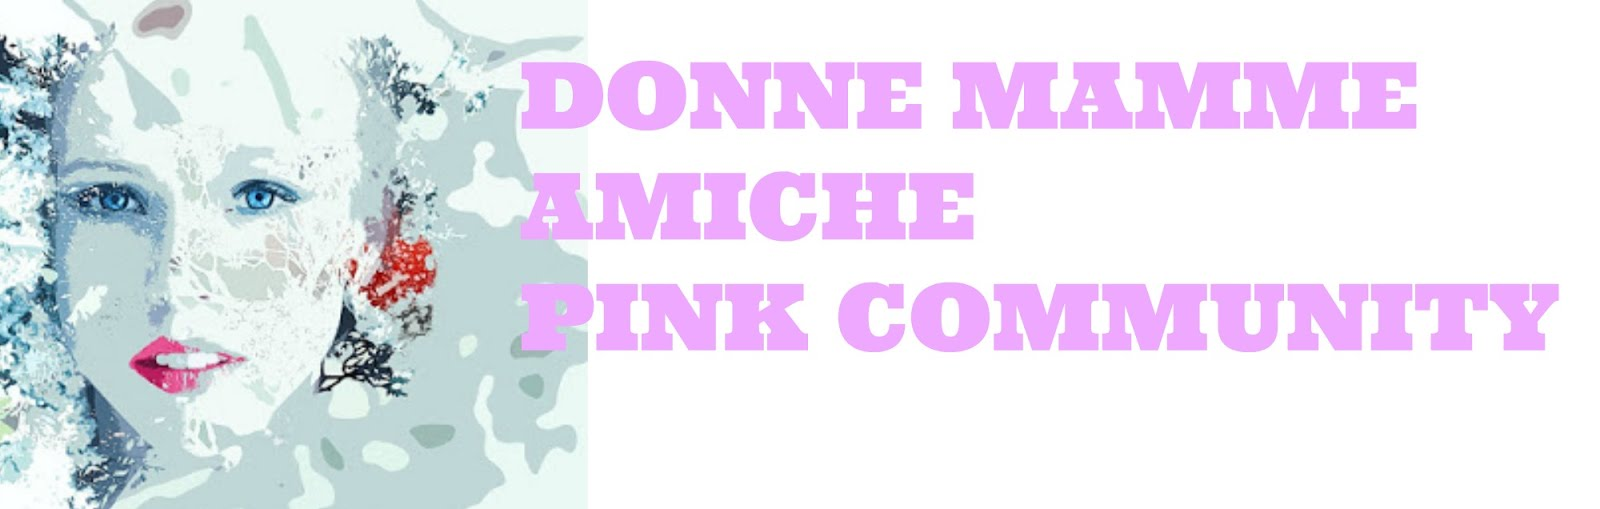 Donne mamme amiche pink community